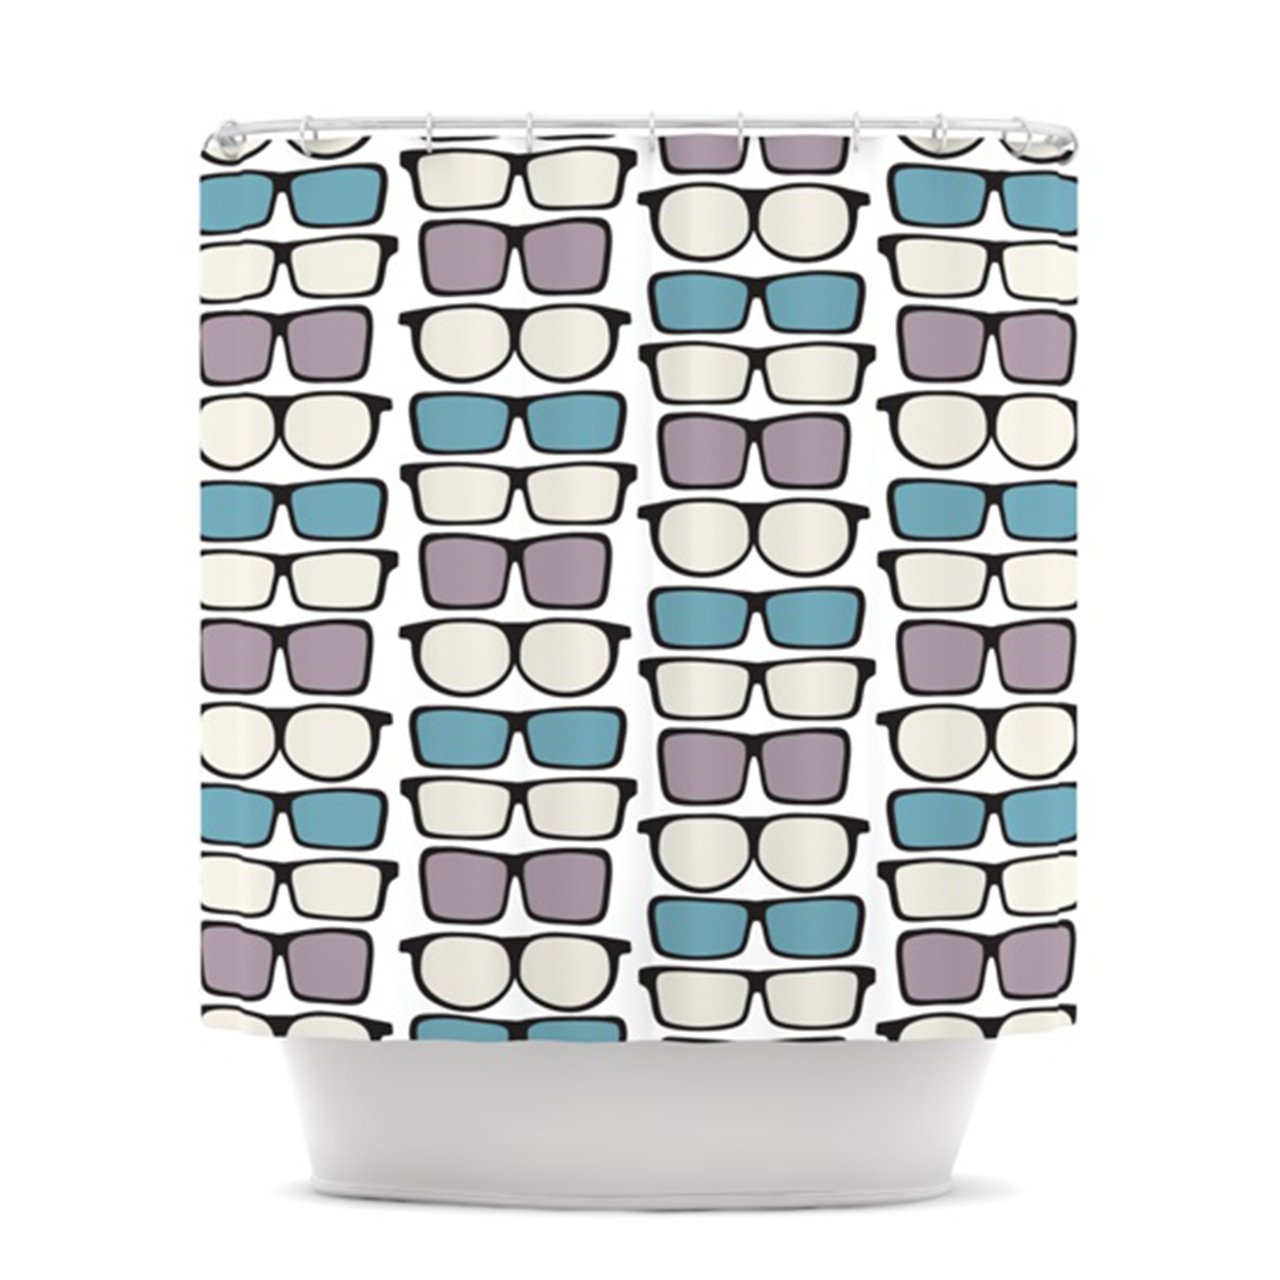 69 by 70-Inch Kess InHouse Michelle Drew Spectacles Geek Chic Shower Curtain